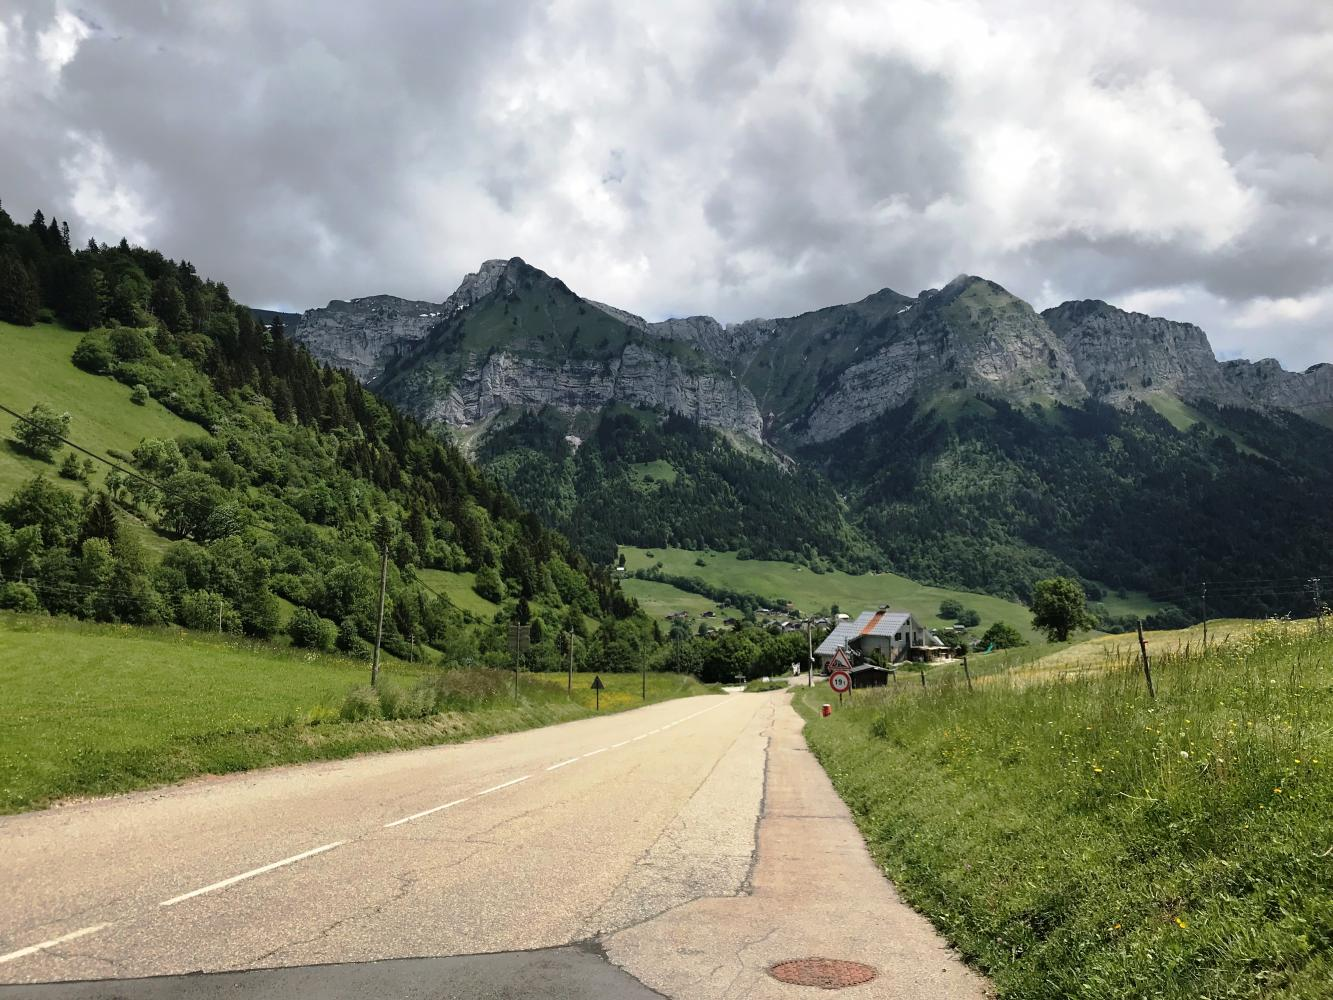 Col de la Forclaz Bike Climb - PJAMM Cycling